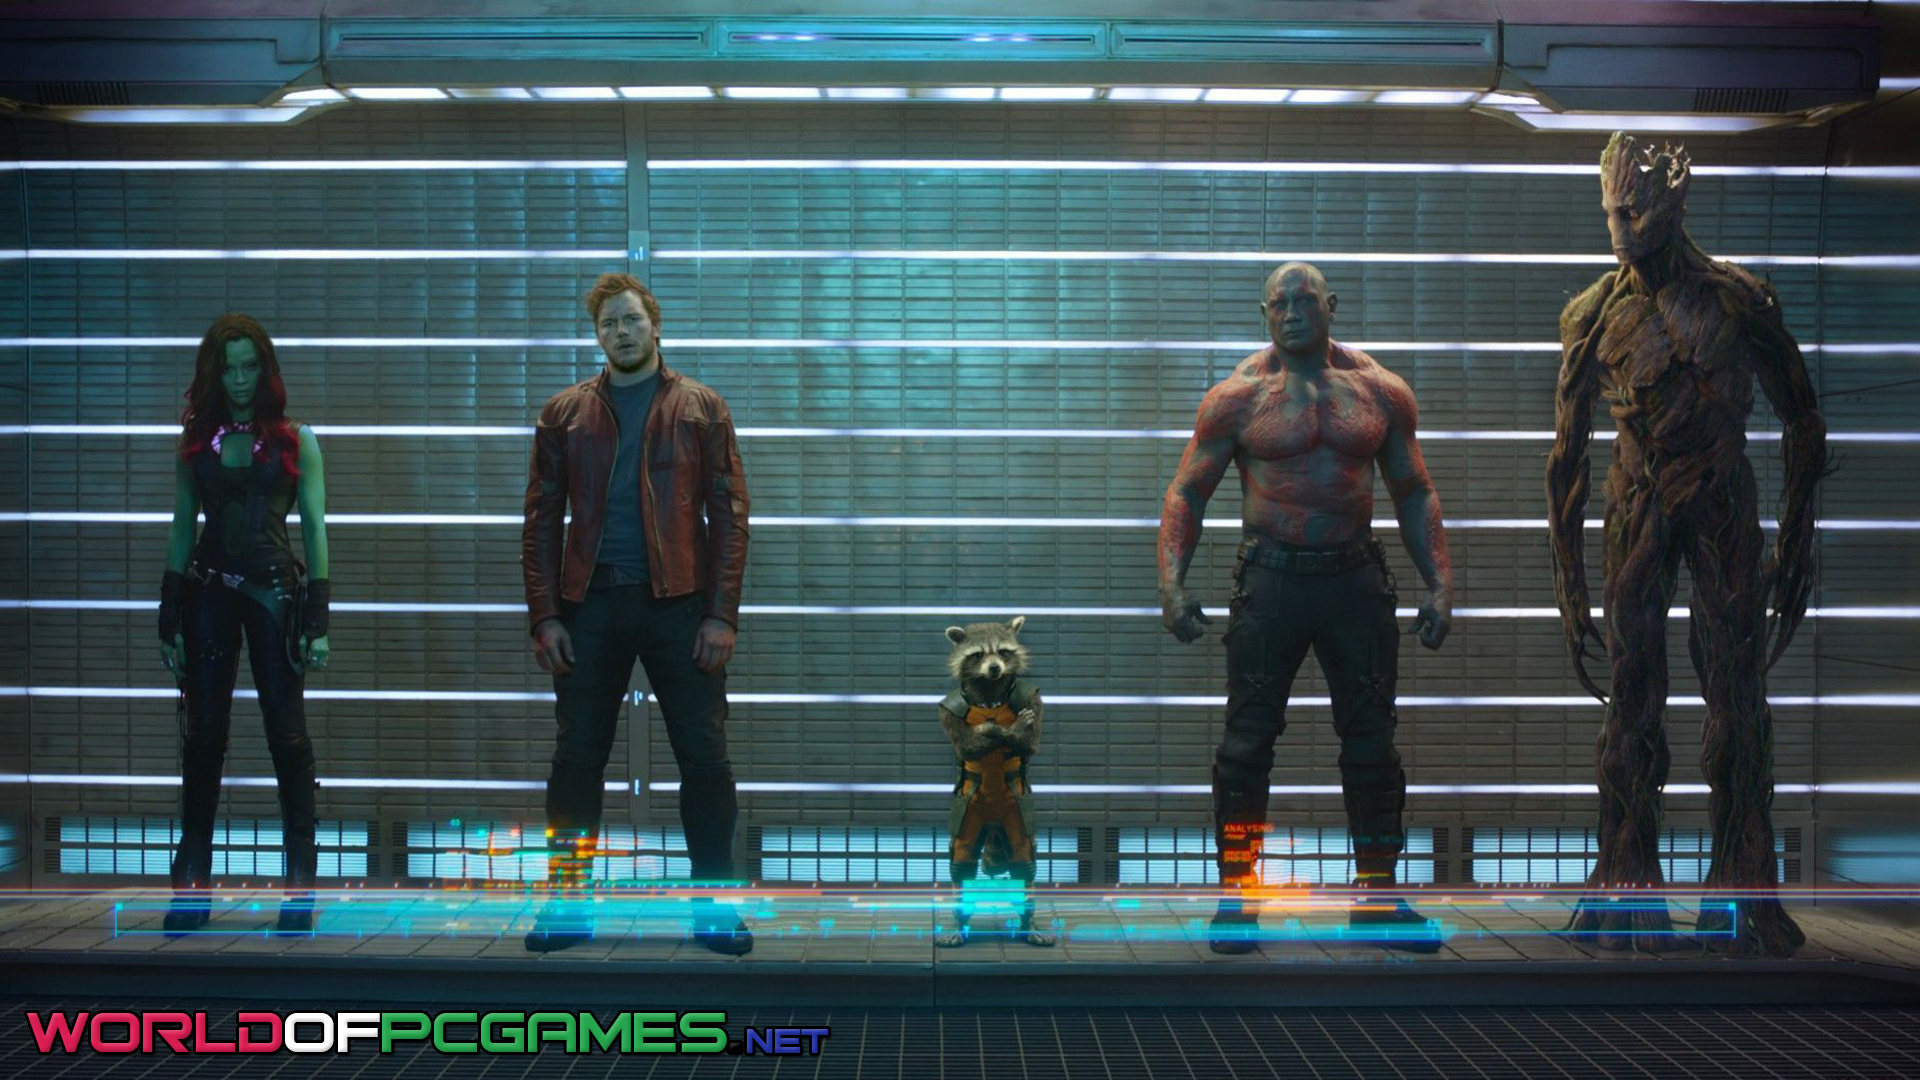 Guardians Of The Galaxy Free Download PC Game Game By Worldofpcgames.com